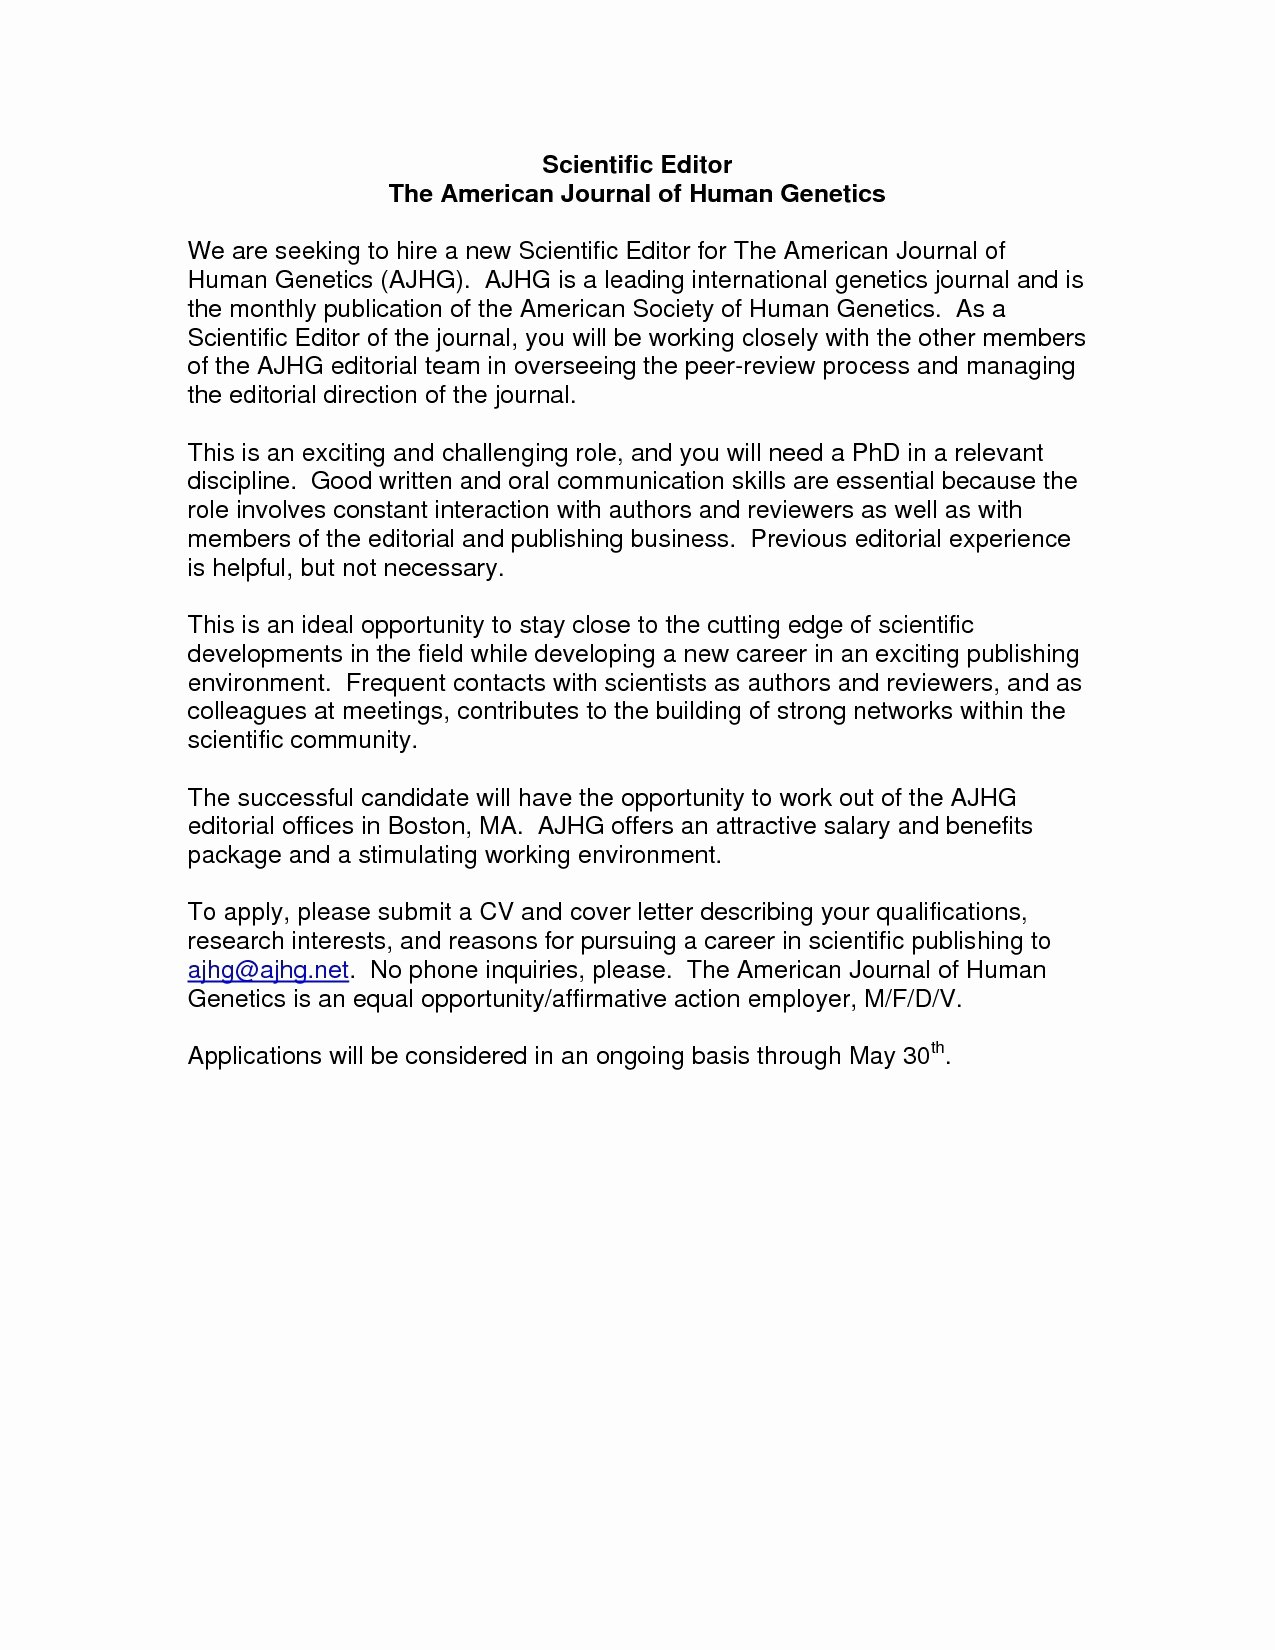 Letter From the Editor Example for Students Inspirational Sample Letters to the Editor for Students Letters to the